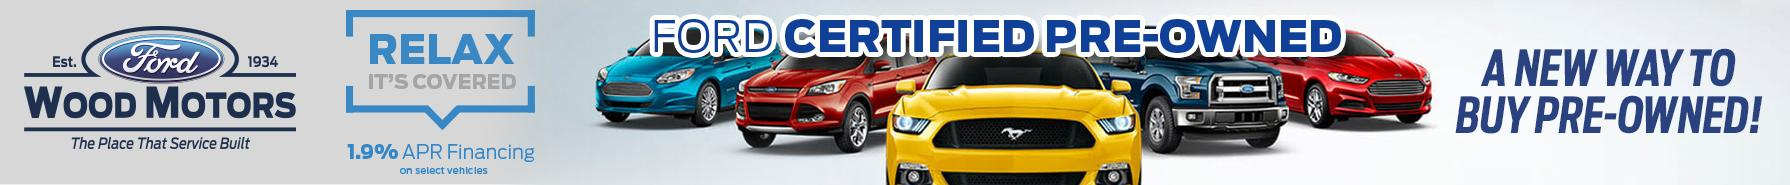 Wood Motors Ford Certified Pre-Owned